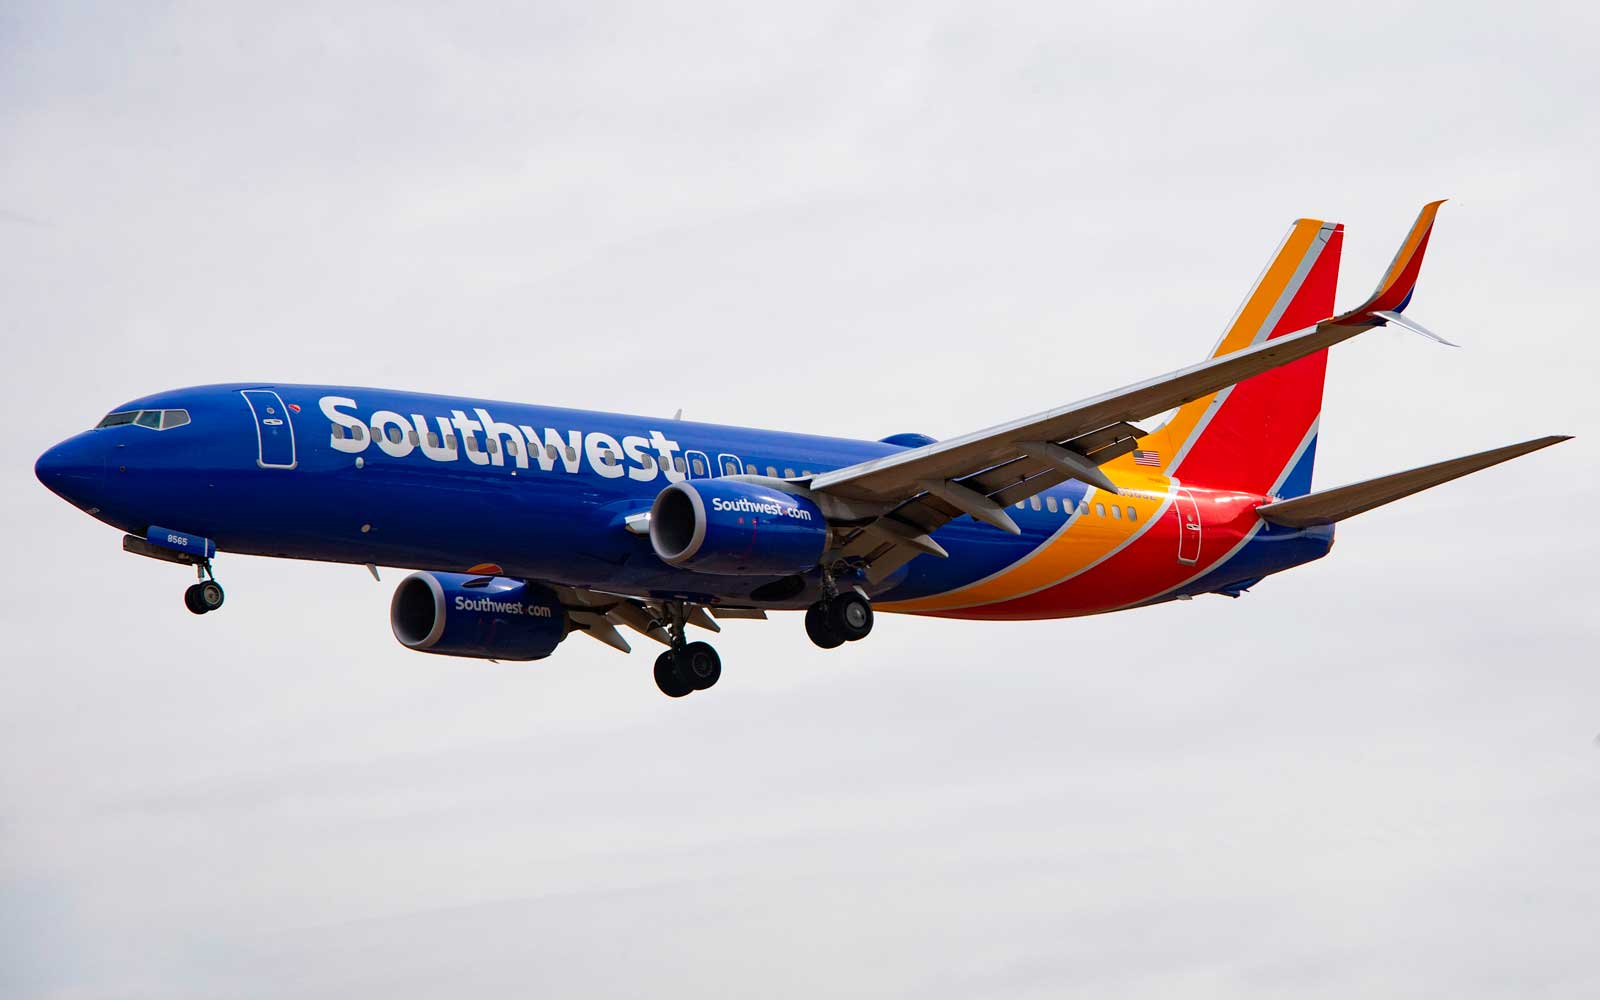 Southwest Says Its Boeing 737 Max 8 Planes Are Safe — but It Will Waive Change Fees for Nervous Travelers